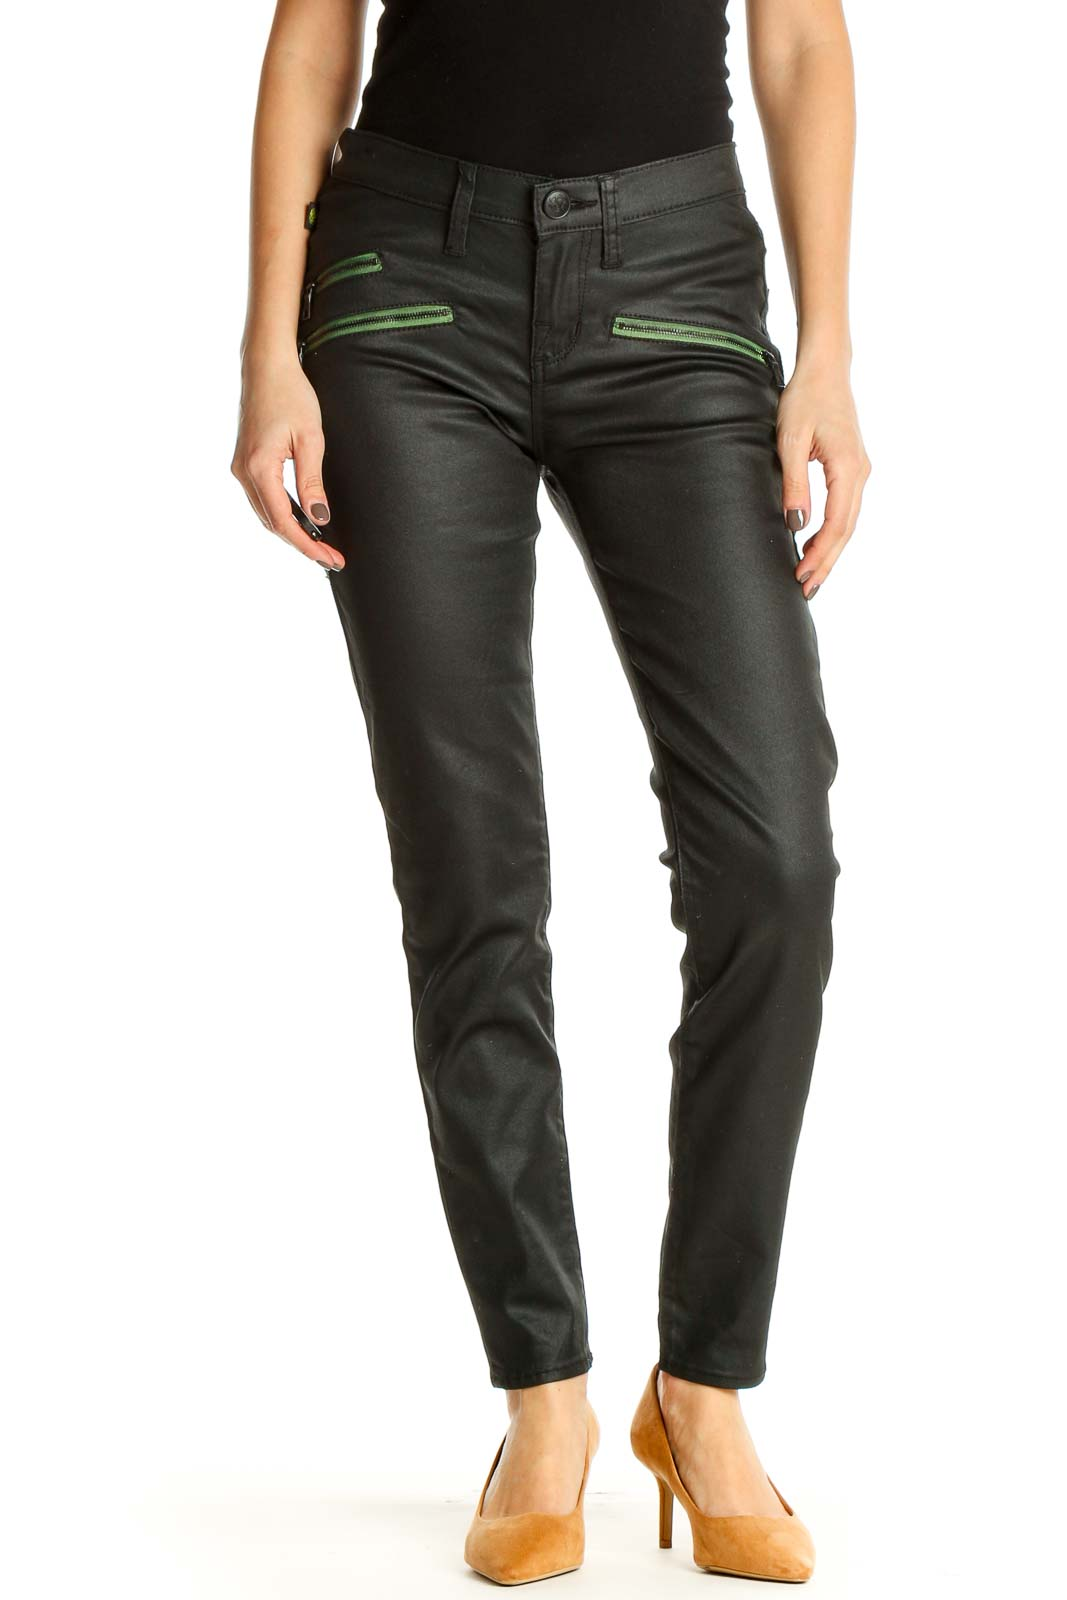 Green Solid Casual Trousers Front